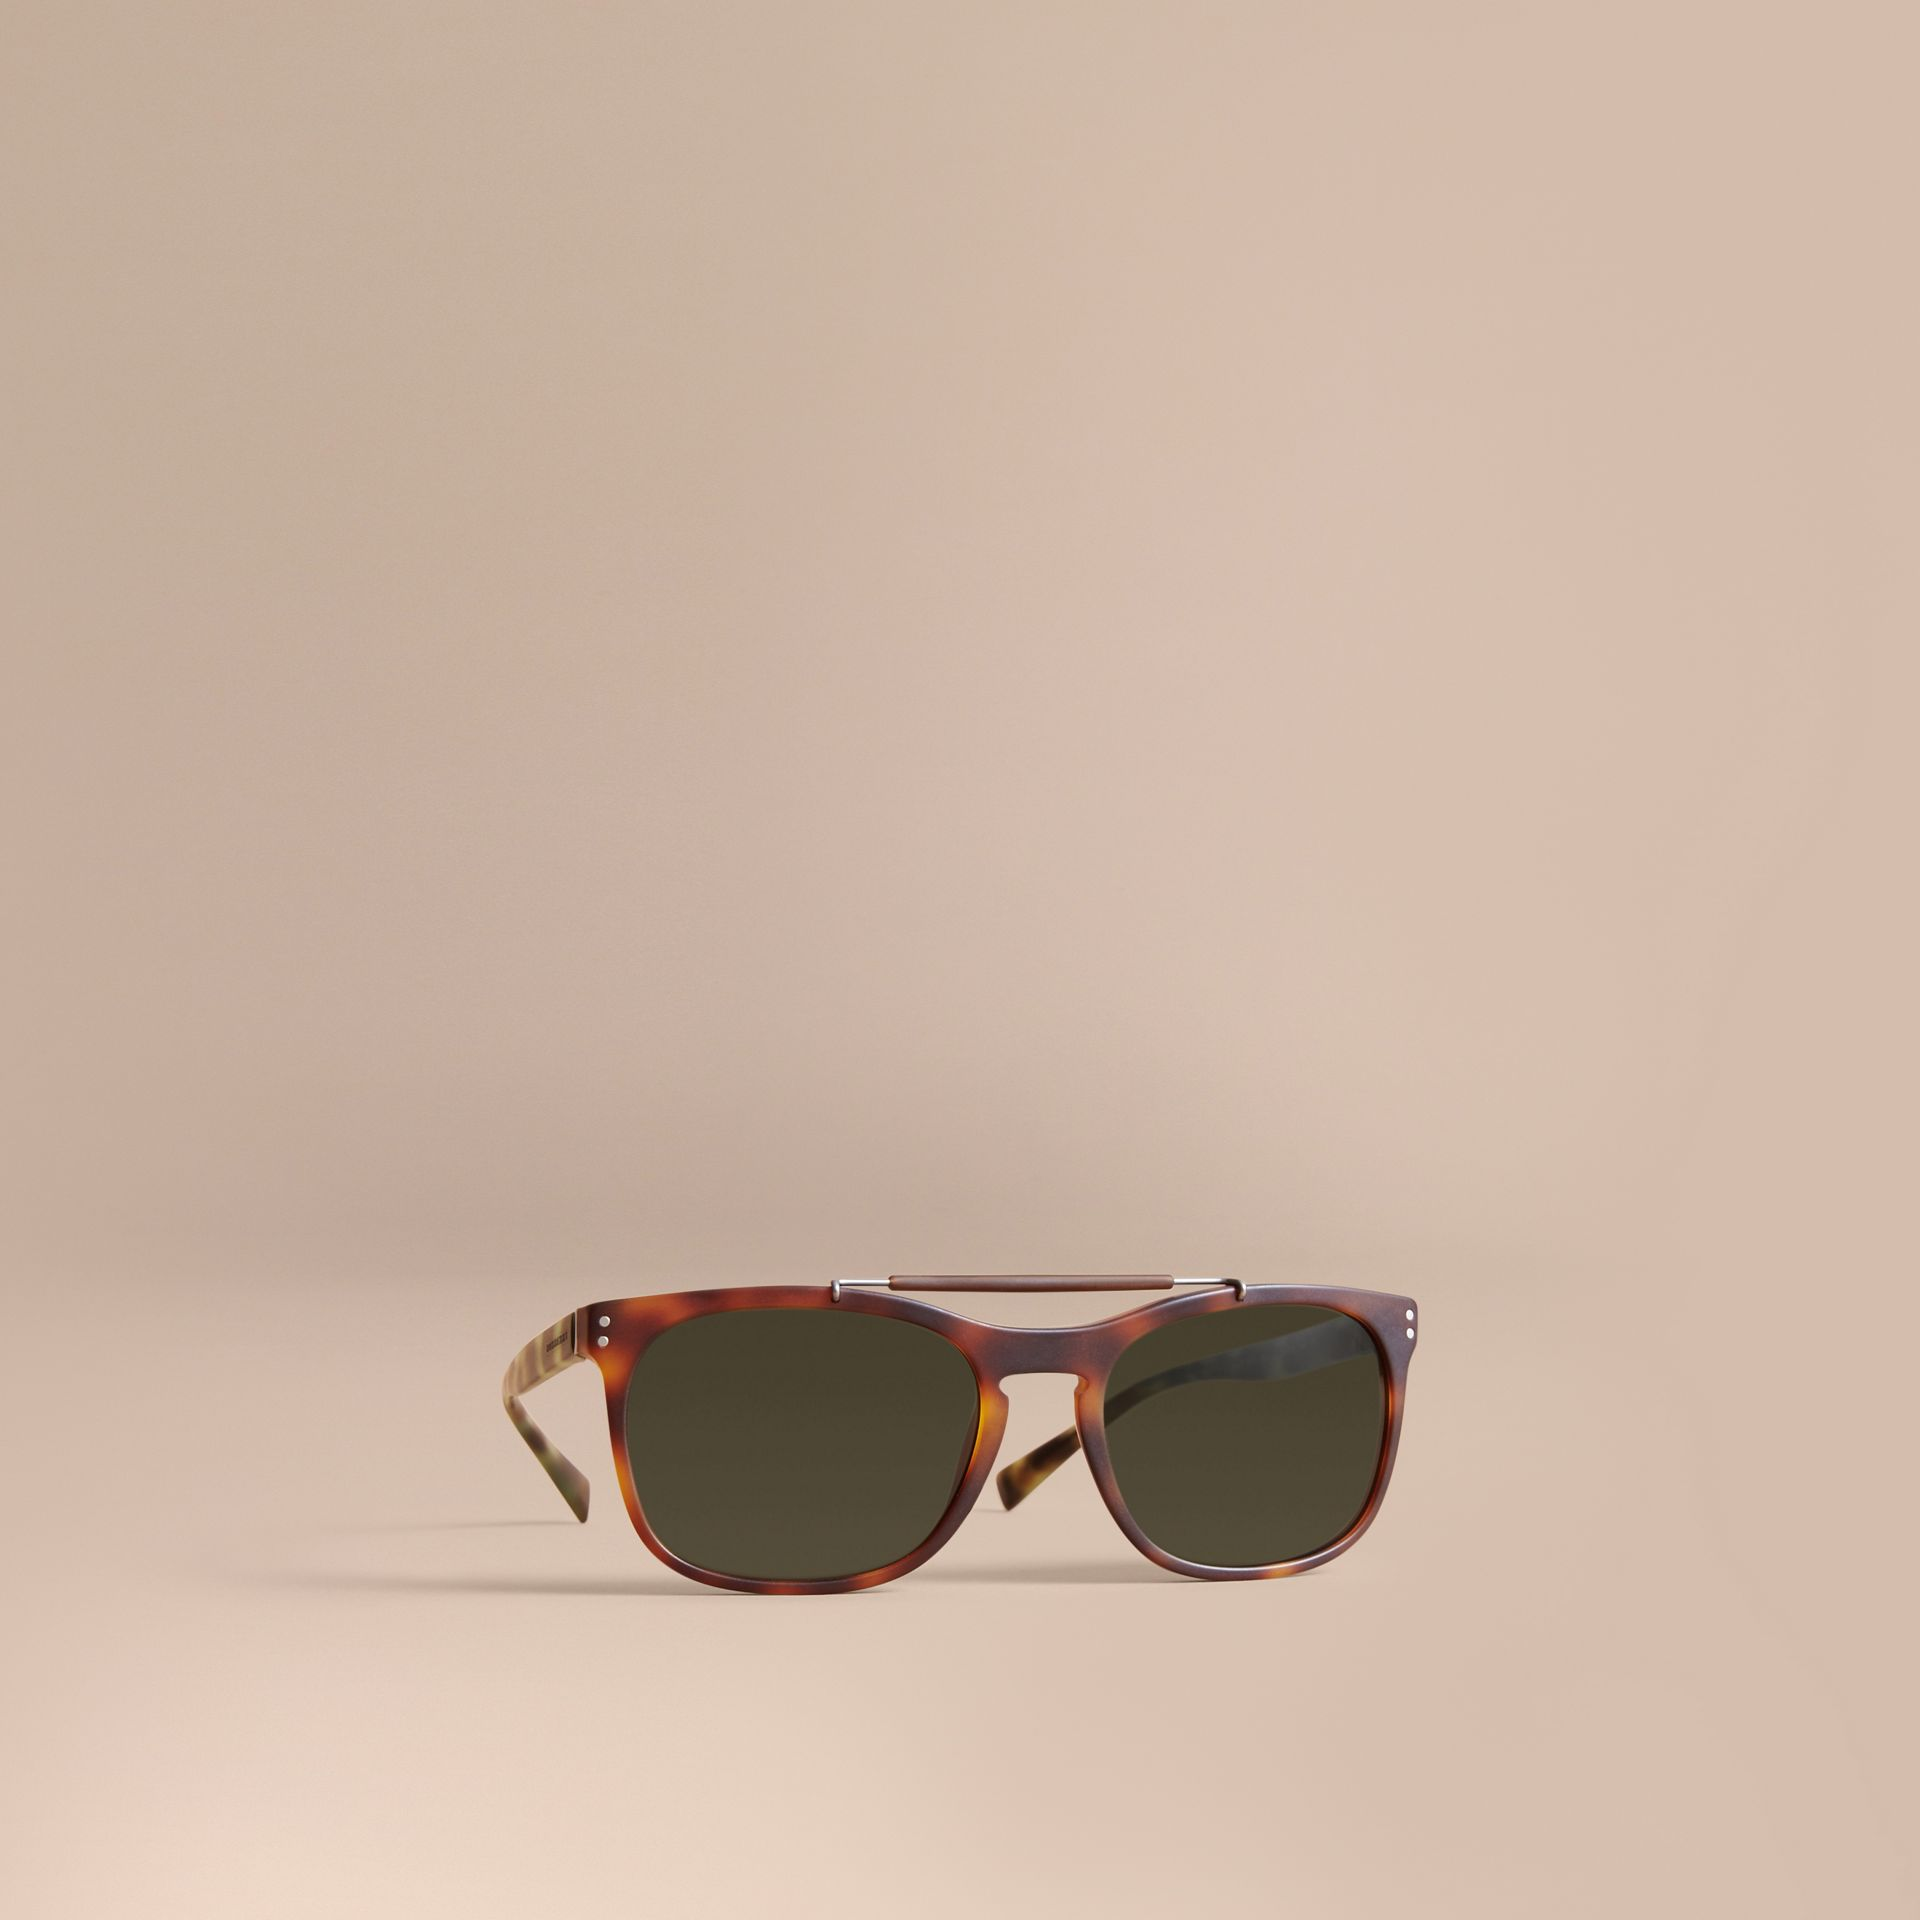 Top Bar Square Frame Sunglasses in Brown - Men | Burberry - gallery image 1